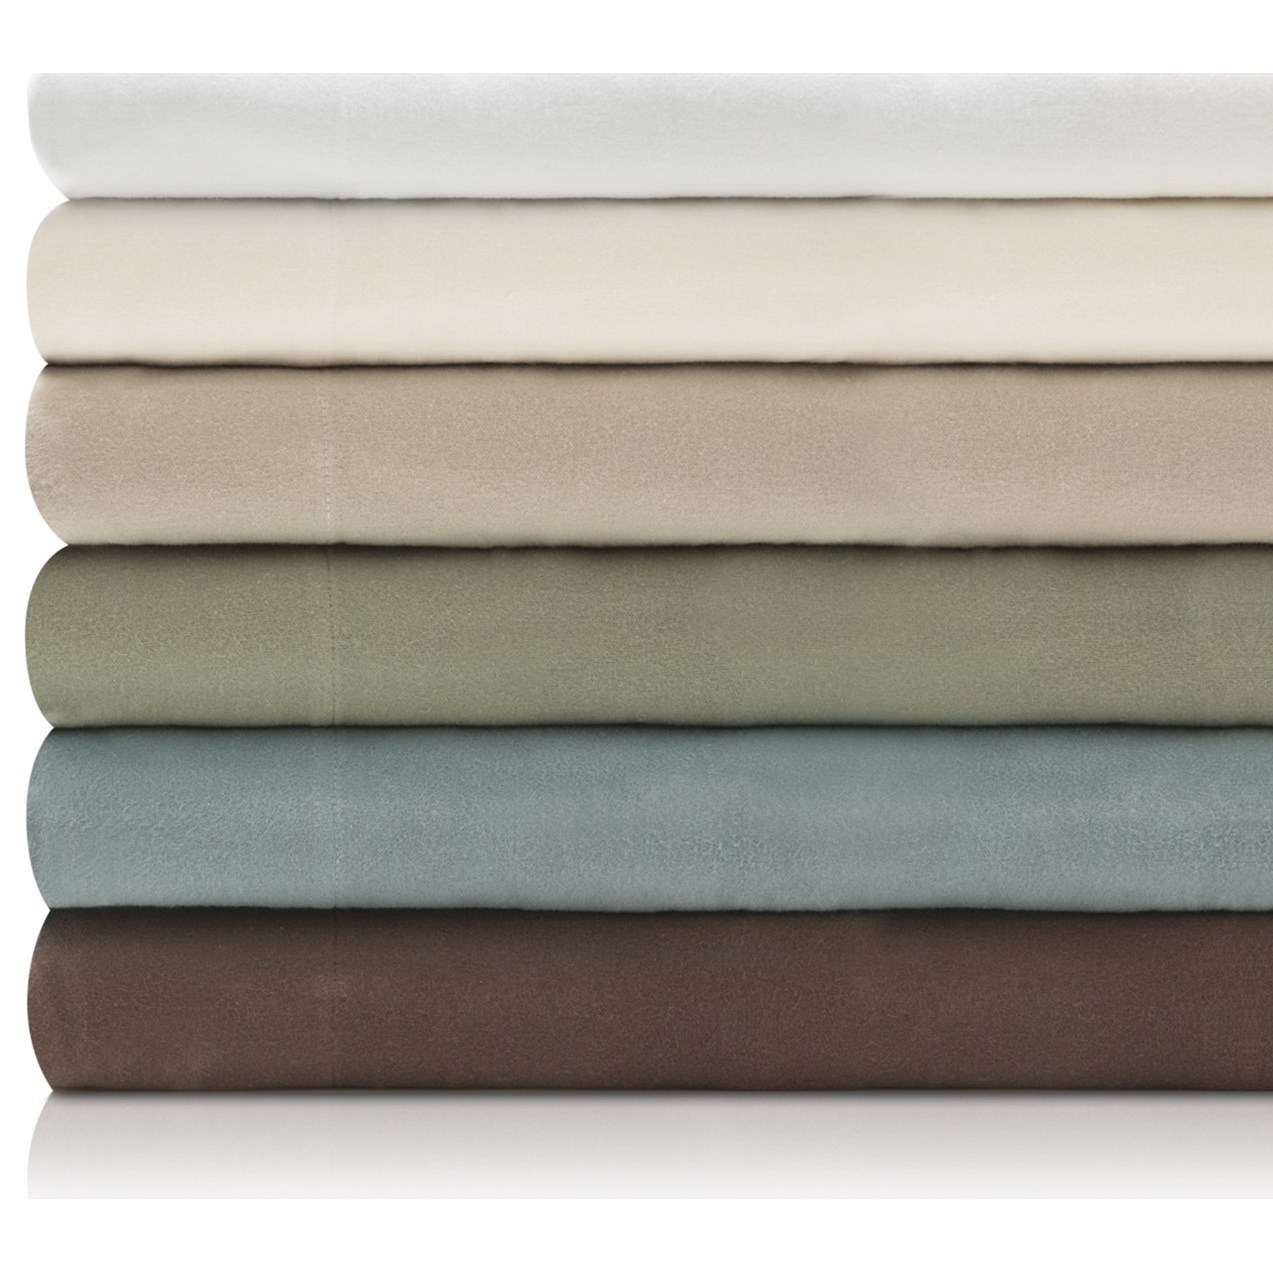 Malouf Portuguese Flannel Twin XL Woven™ Portuguese Flannel Sheet Set - Item Number: WO19TXIVFS